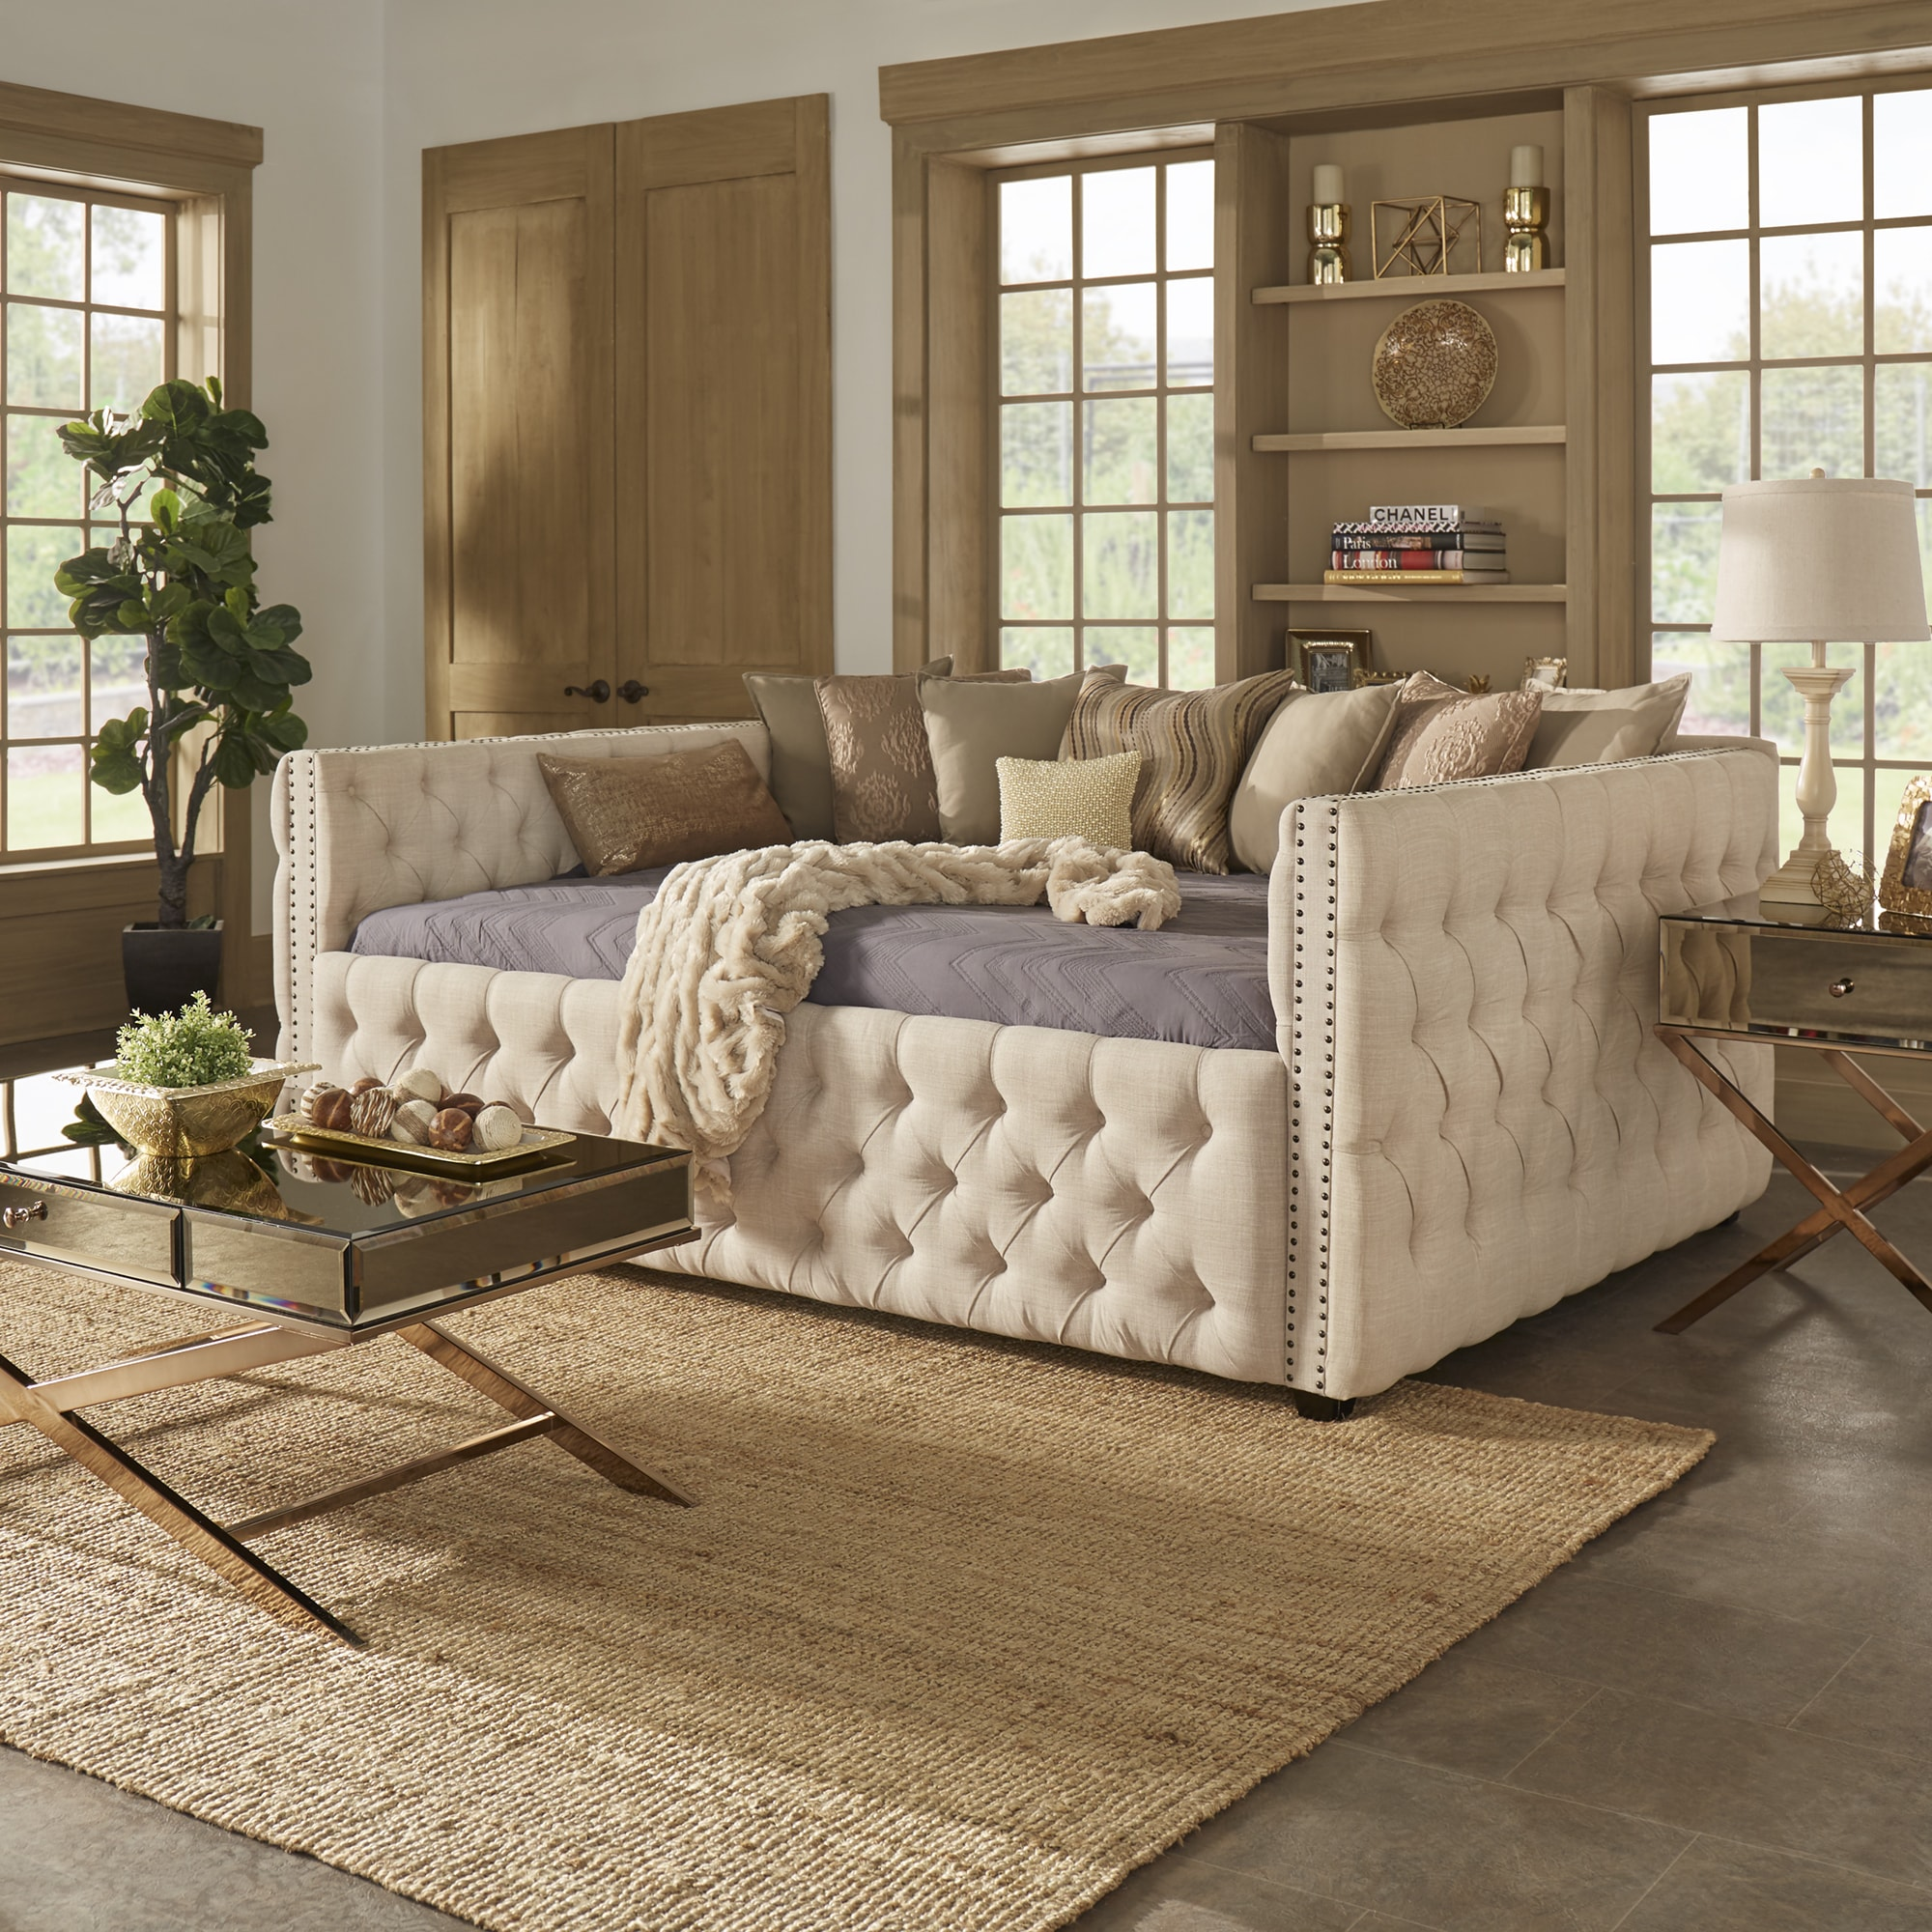 Top Knightsbridge Queen-size Tufted Nailhead Chesterfield Daybed and  GH24